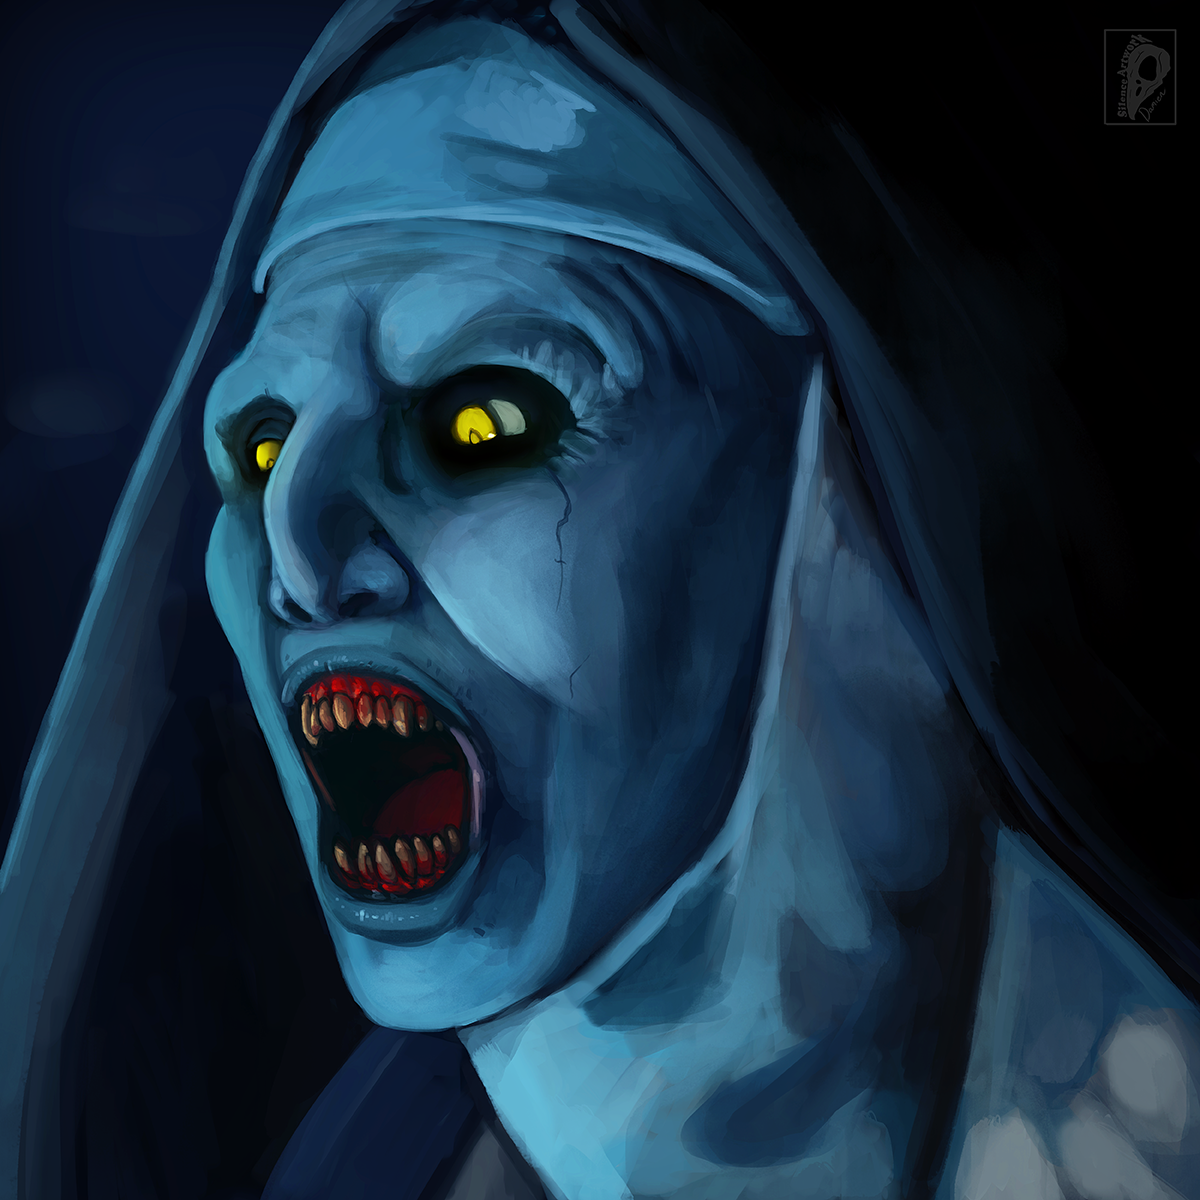 You are Valak! — Weasyl